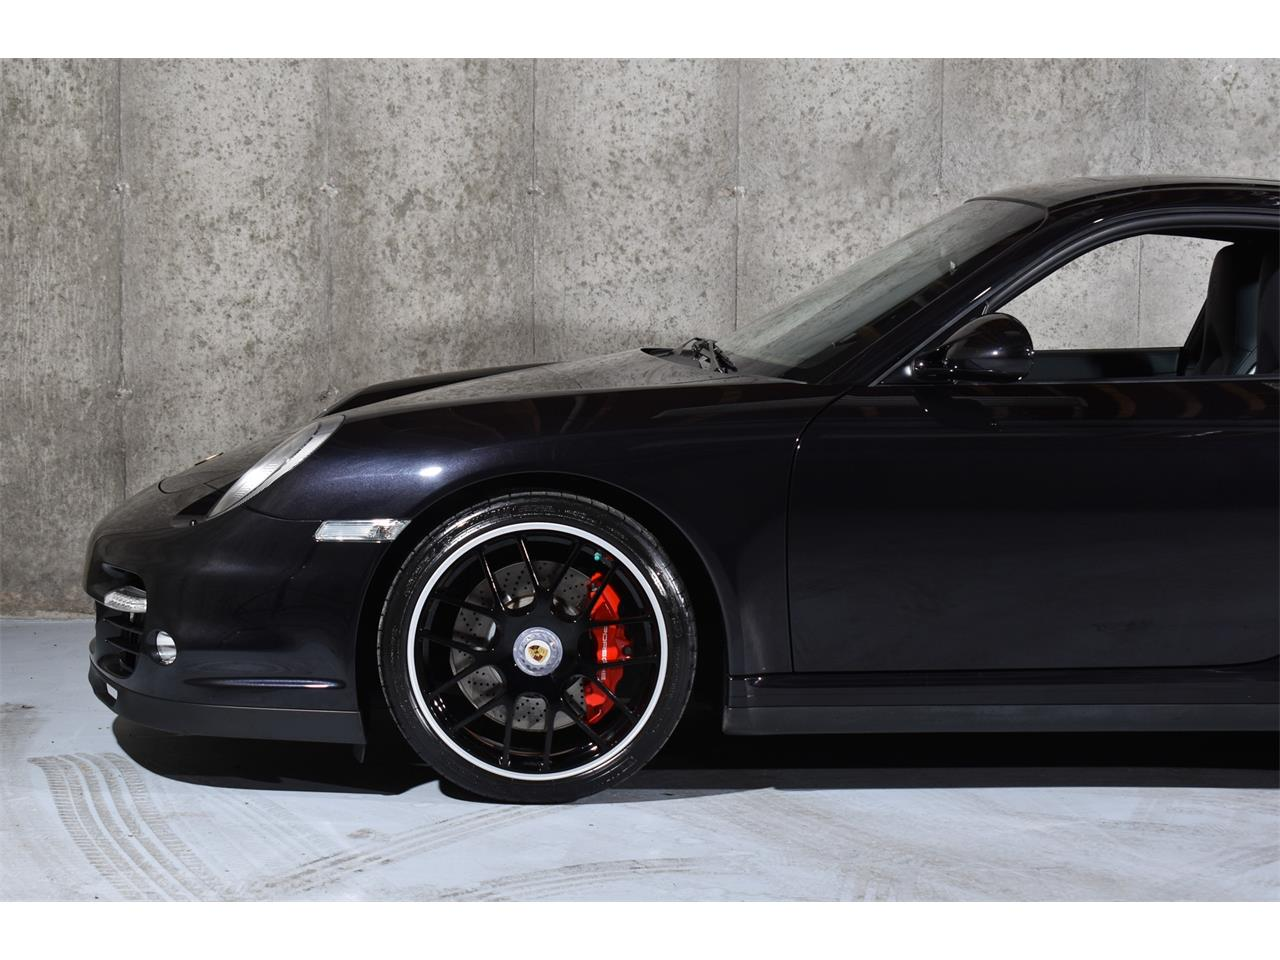 2011 Porsche 911 for sale in Valley Stream, NY – photo 9